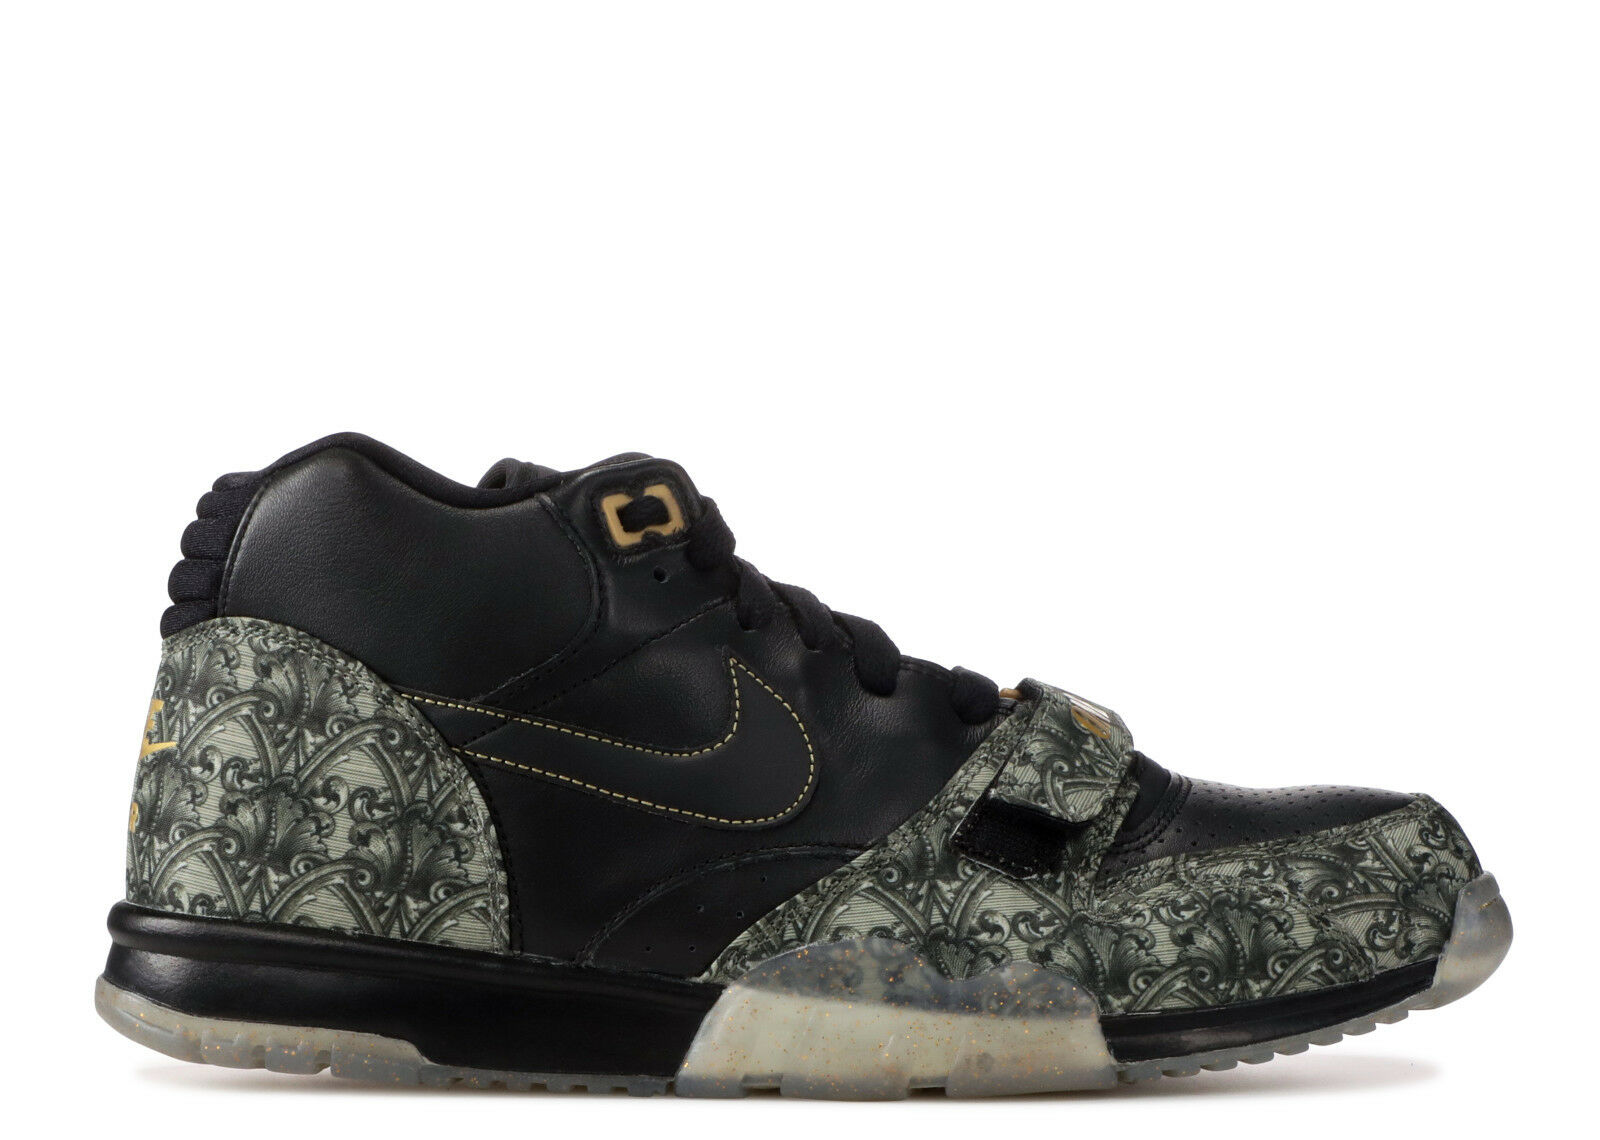 Nike Air Paid Trainer 1 Mid QS Paid Air In Full Sz 12 Black Gold More Money Currency Bo 252e9b